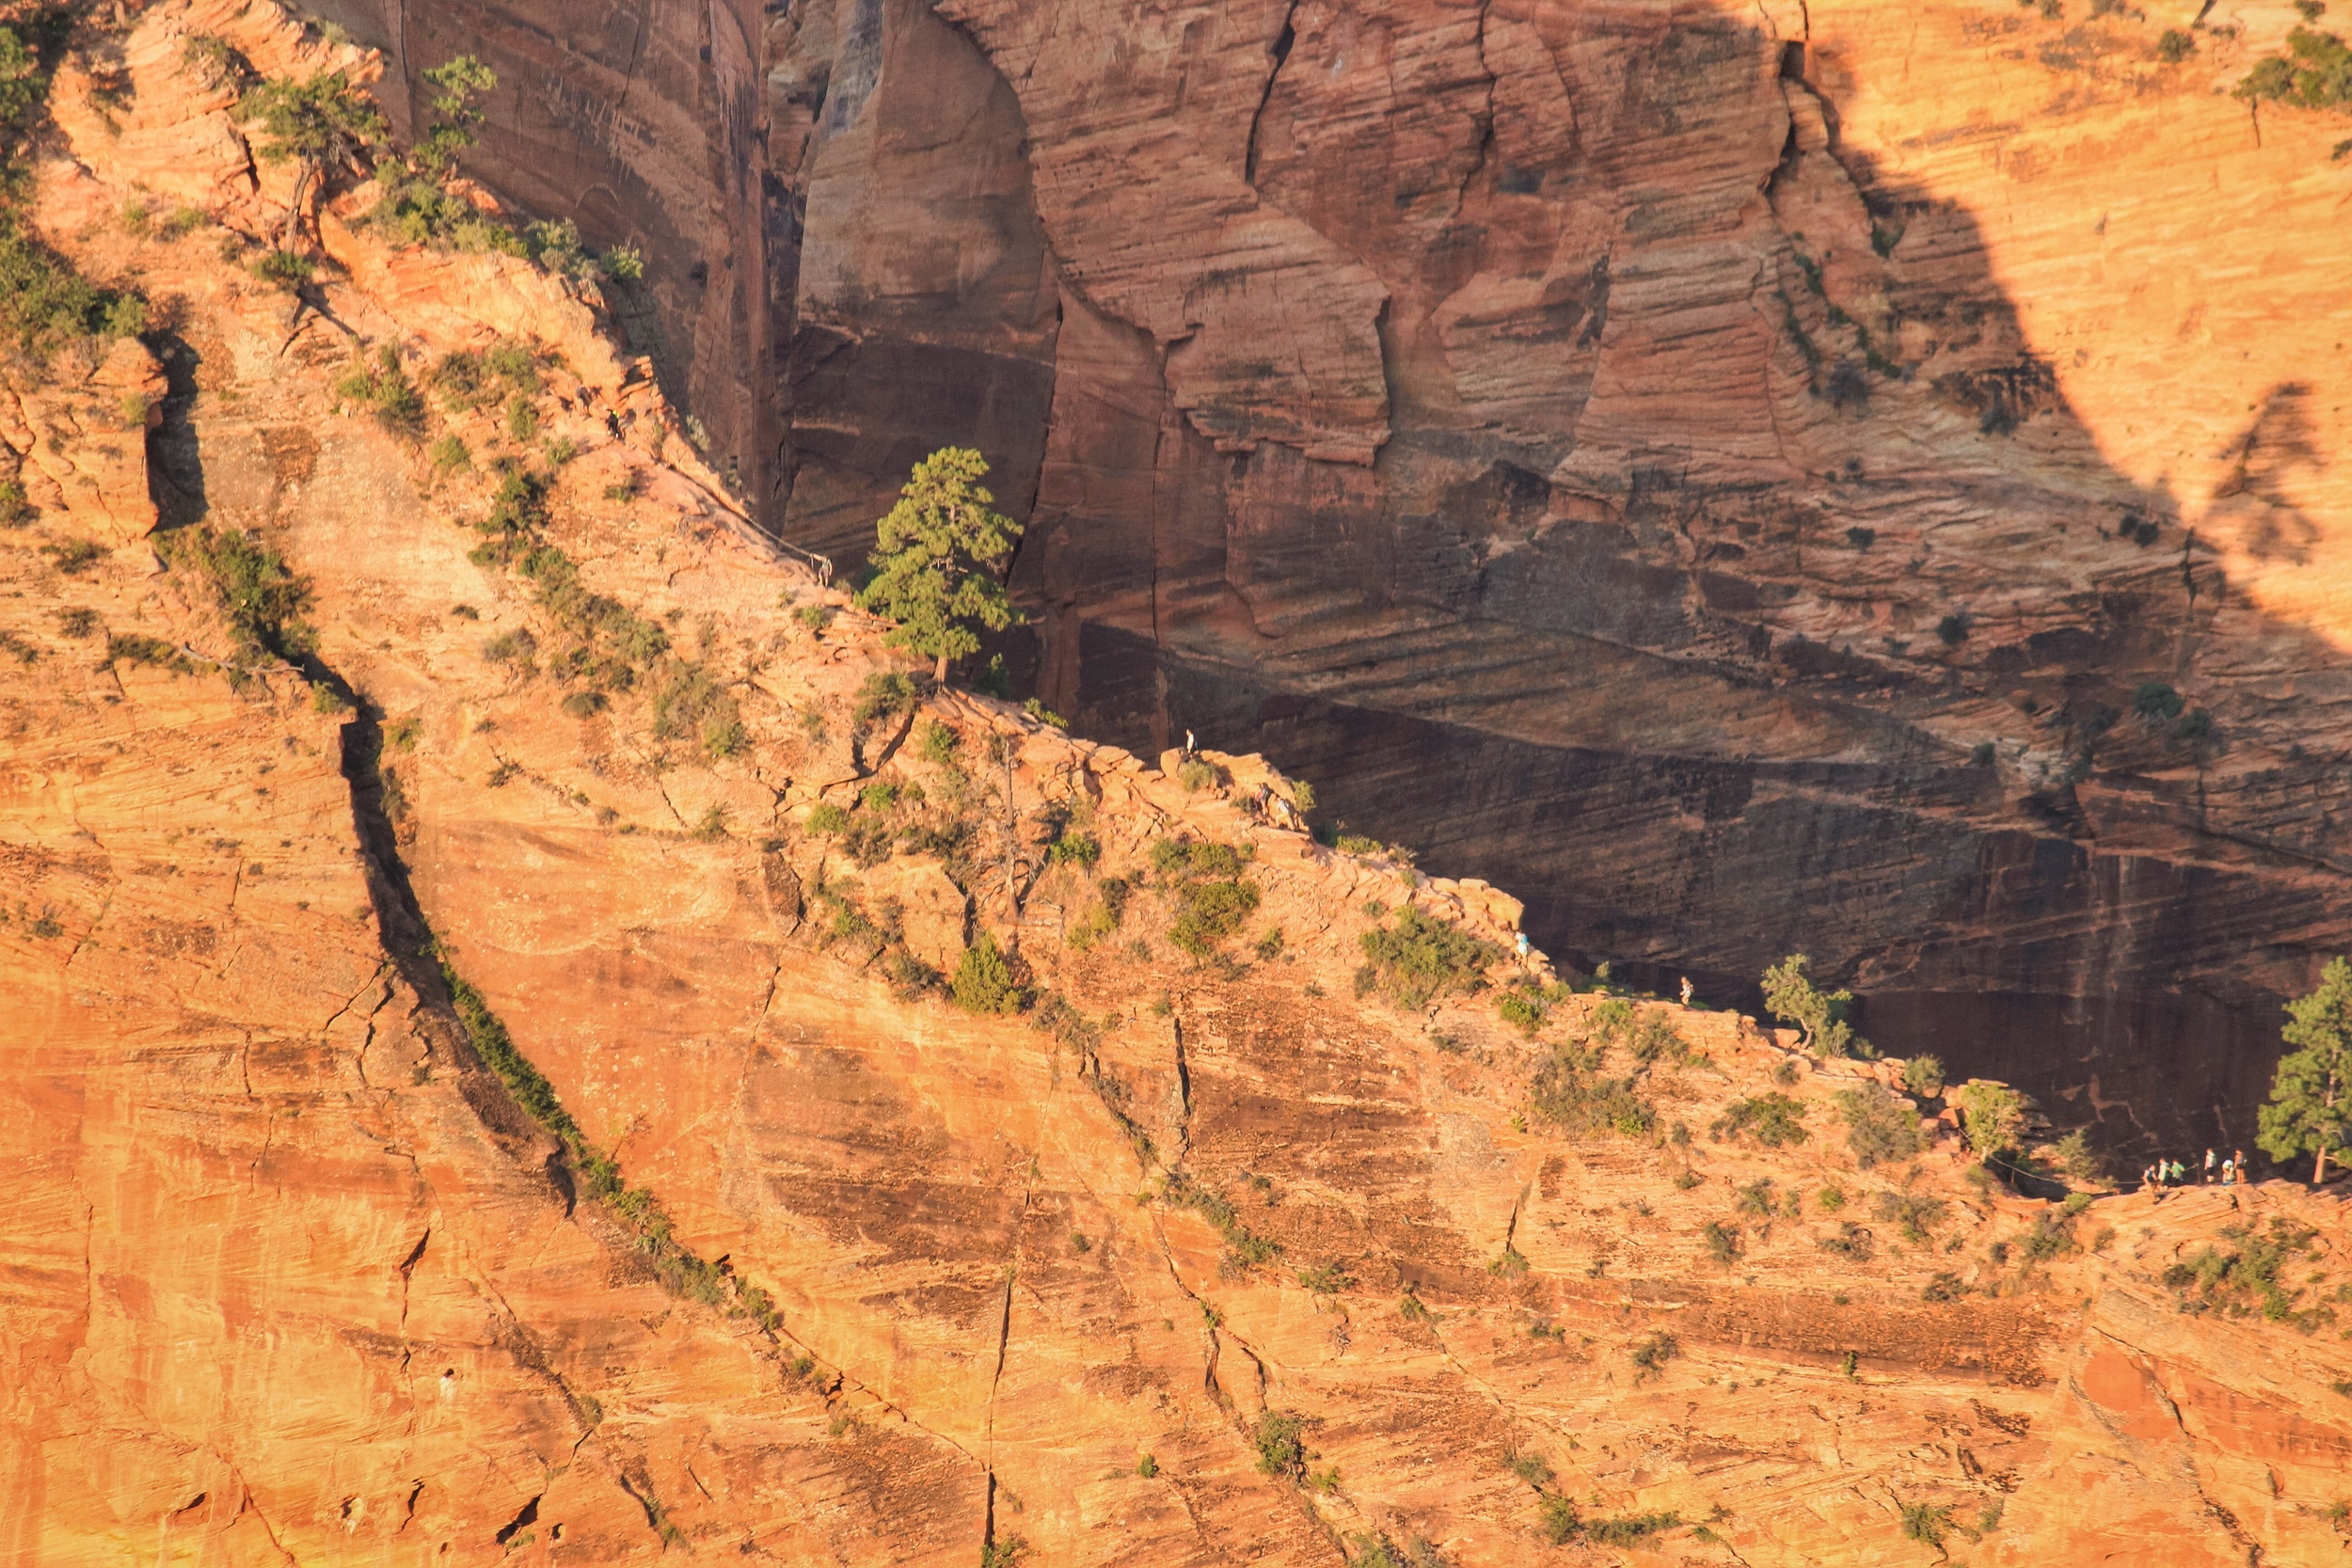 Early Birds get the worm, but the birds who got to their spot the night before, get to sleep in and watch the early birds working hard to get to the top of Angels Landing. I caught these first few hikers of the day with my Telephoto lens above them.